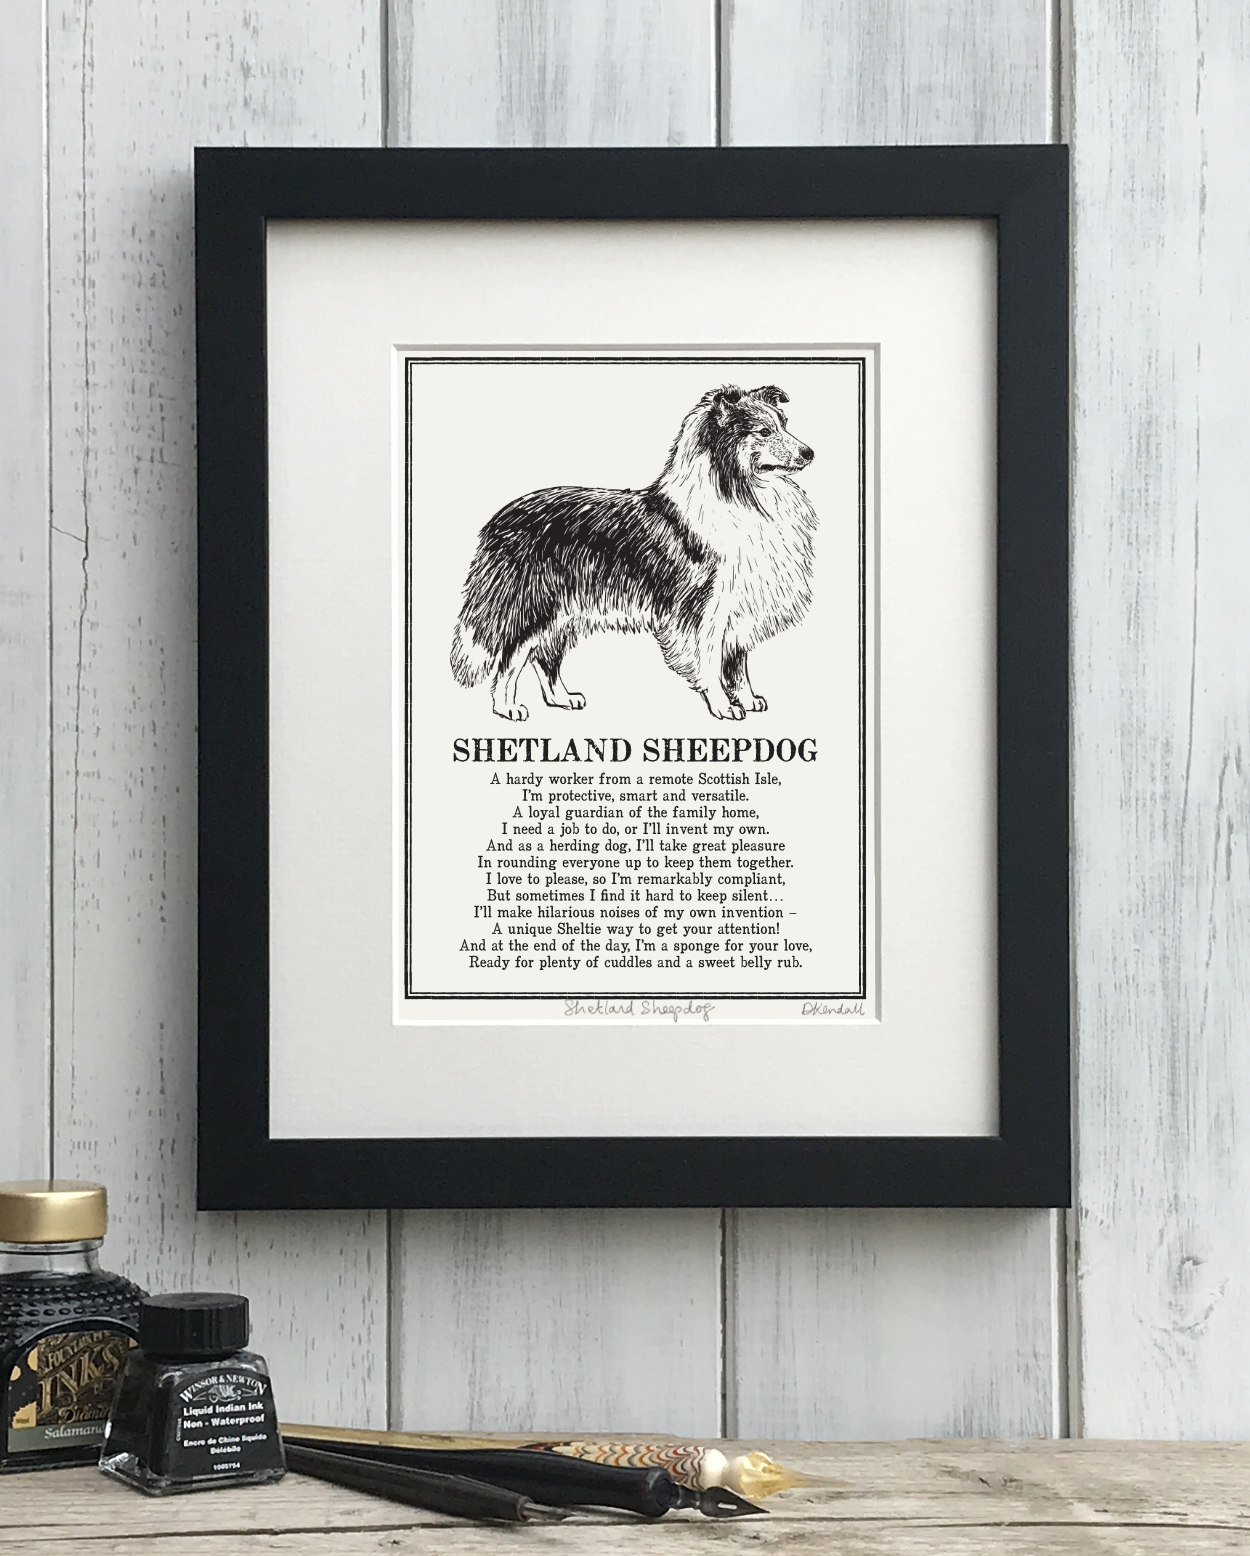 Shetland Sheepdog Sheltie Doggerel Illustrated Poem Art Print | The Enlightened Hound